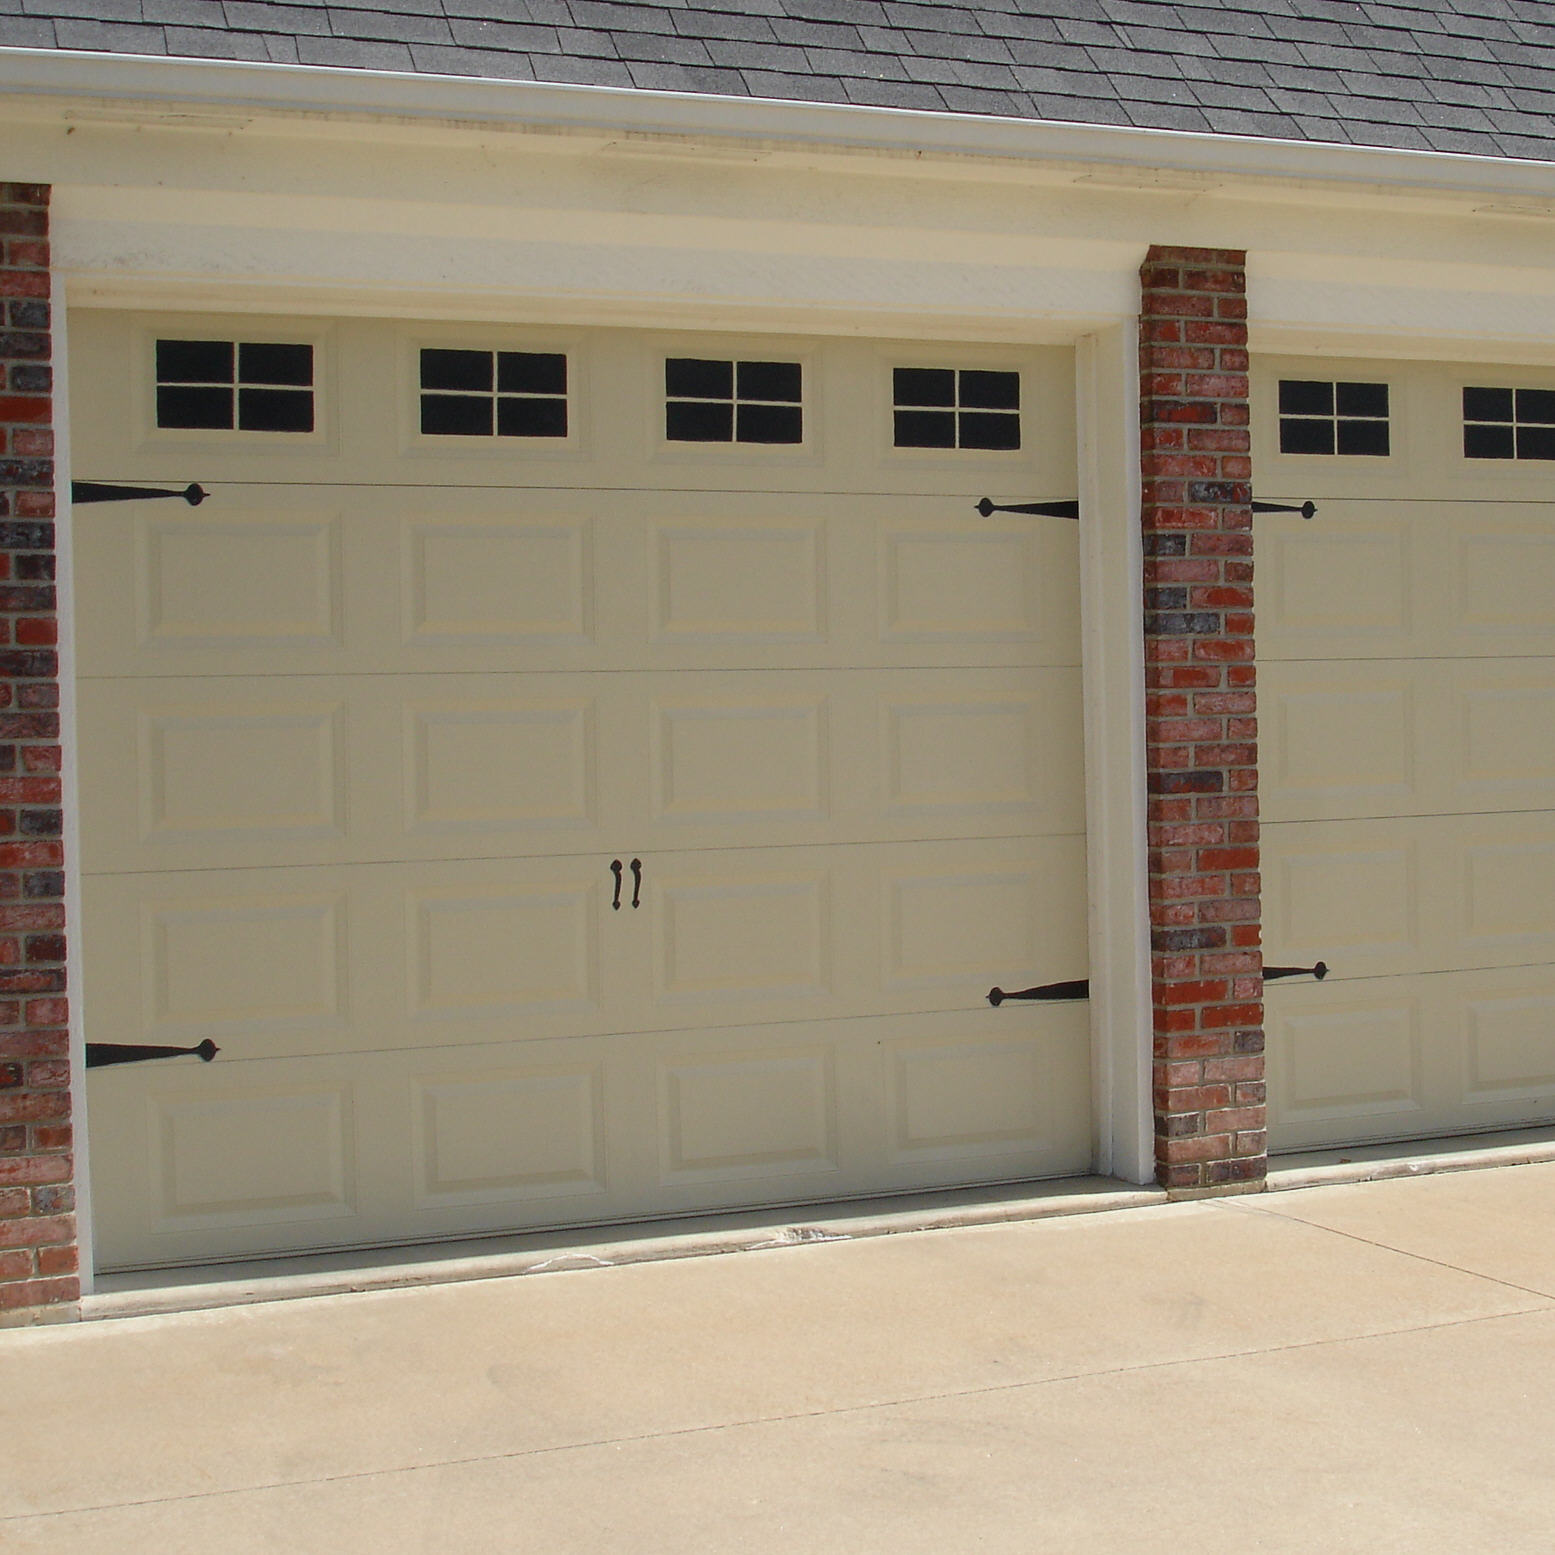 1555 #8B6C40 Forever Decorating!: Carrige House Look Garage Doors wallpaper Grarage Doors 38151555